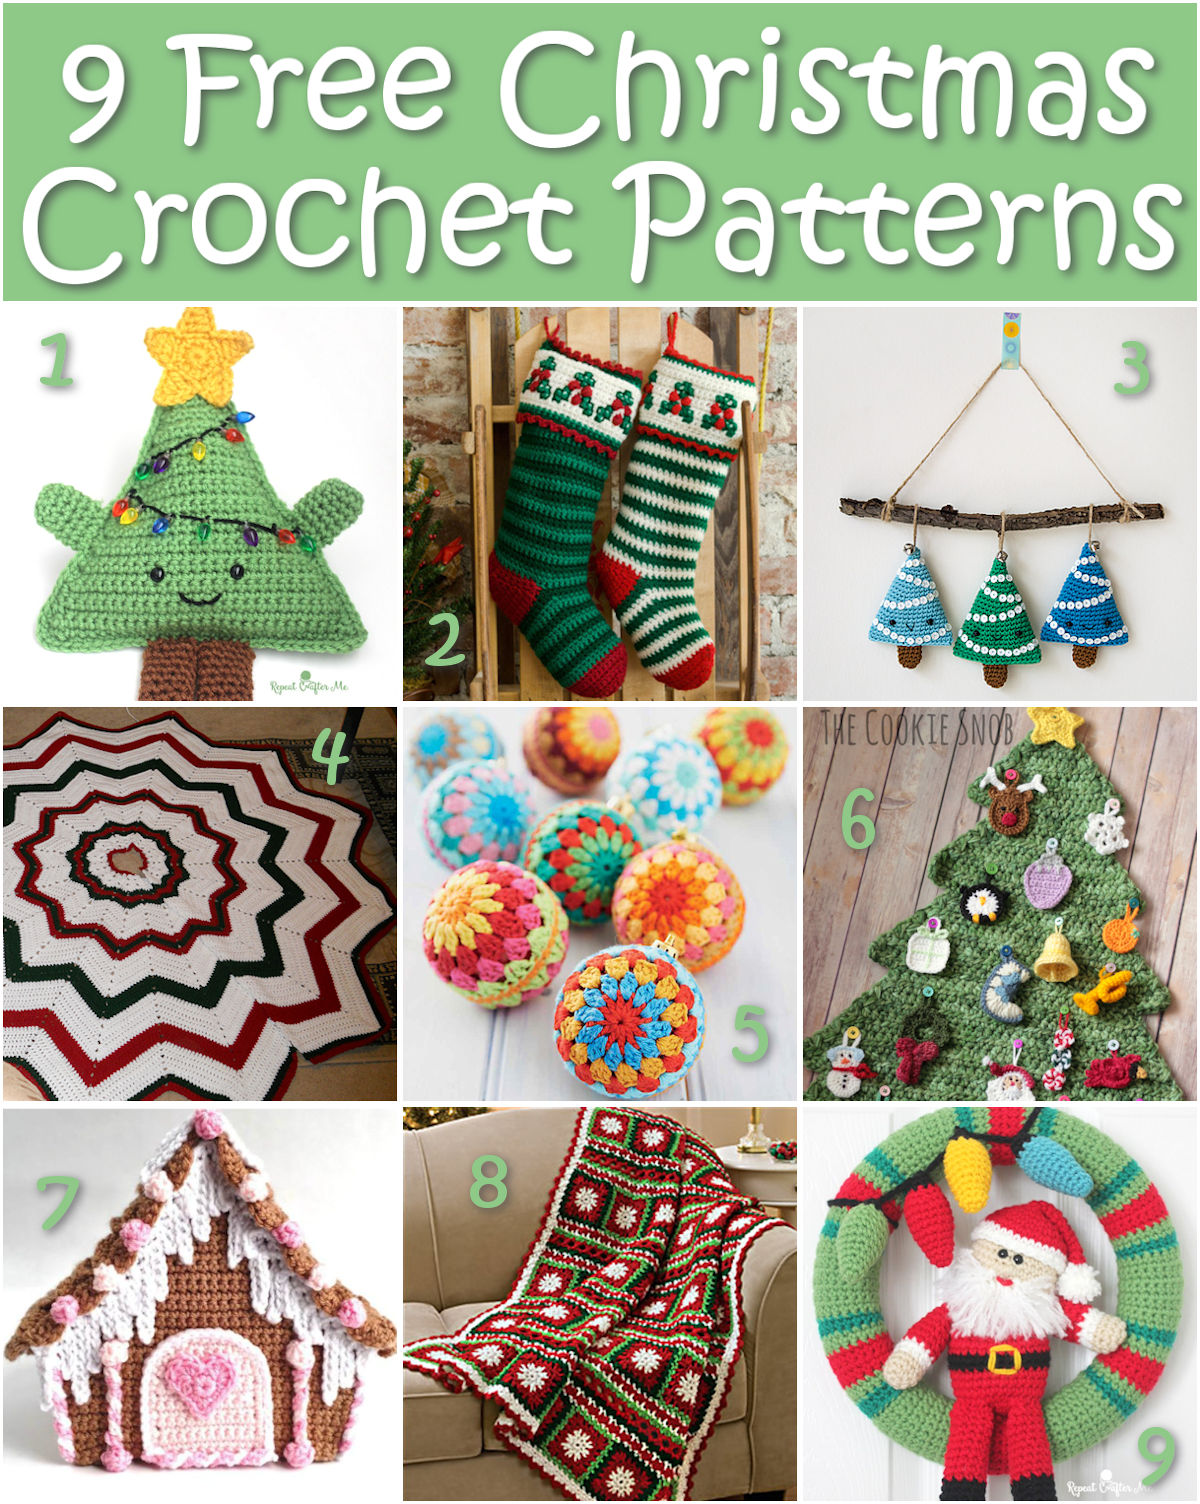 9 Free Christmas Crochet Patterns |